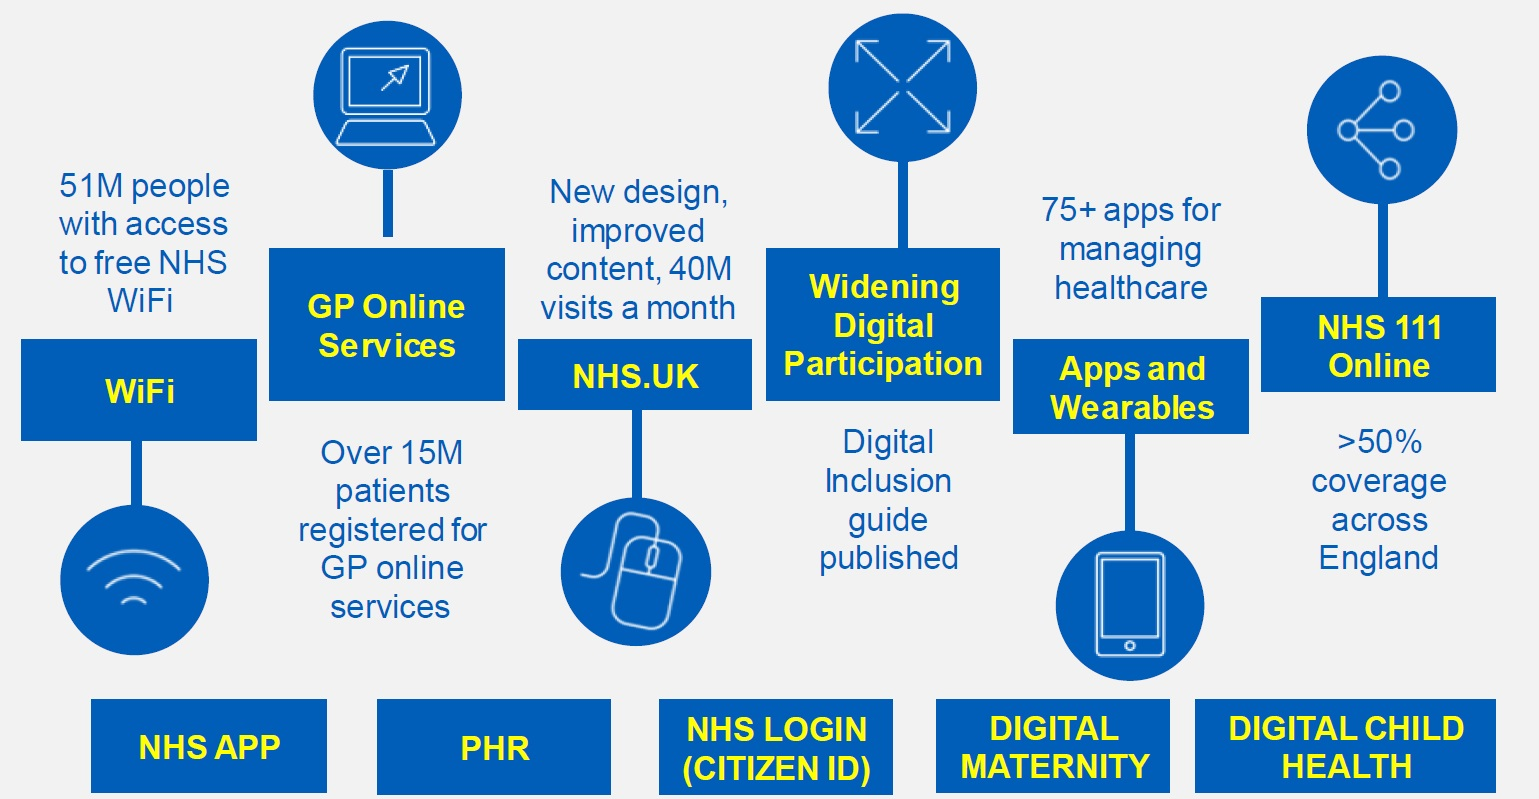 Digital Key Programmes